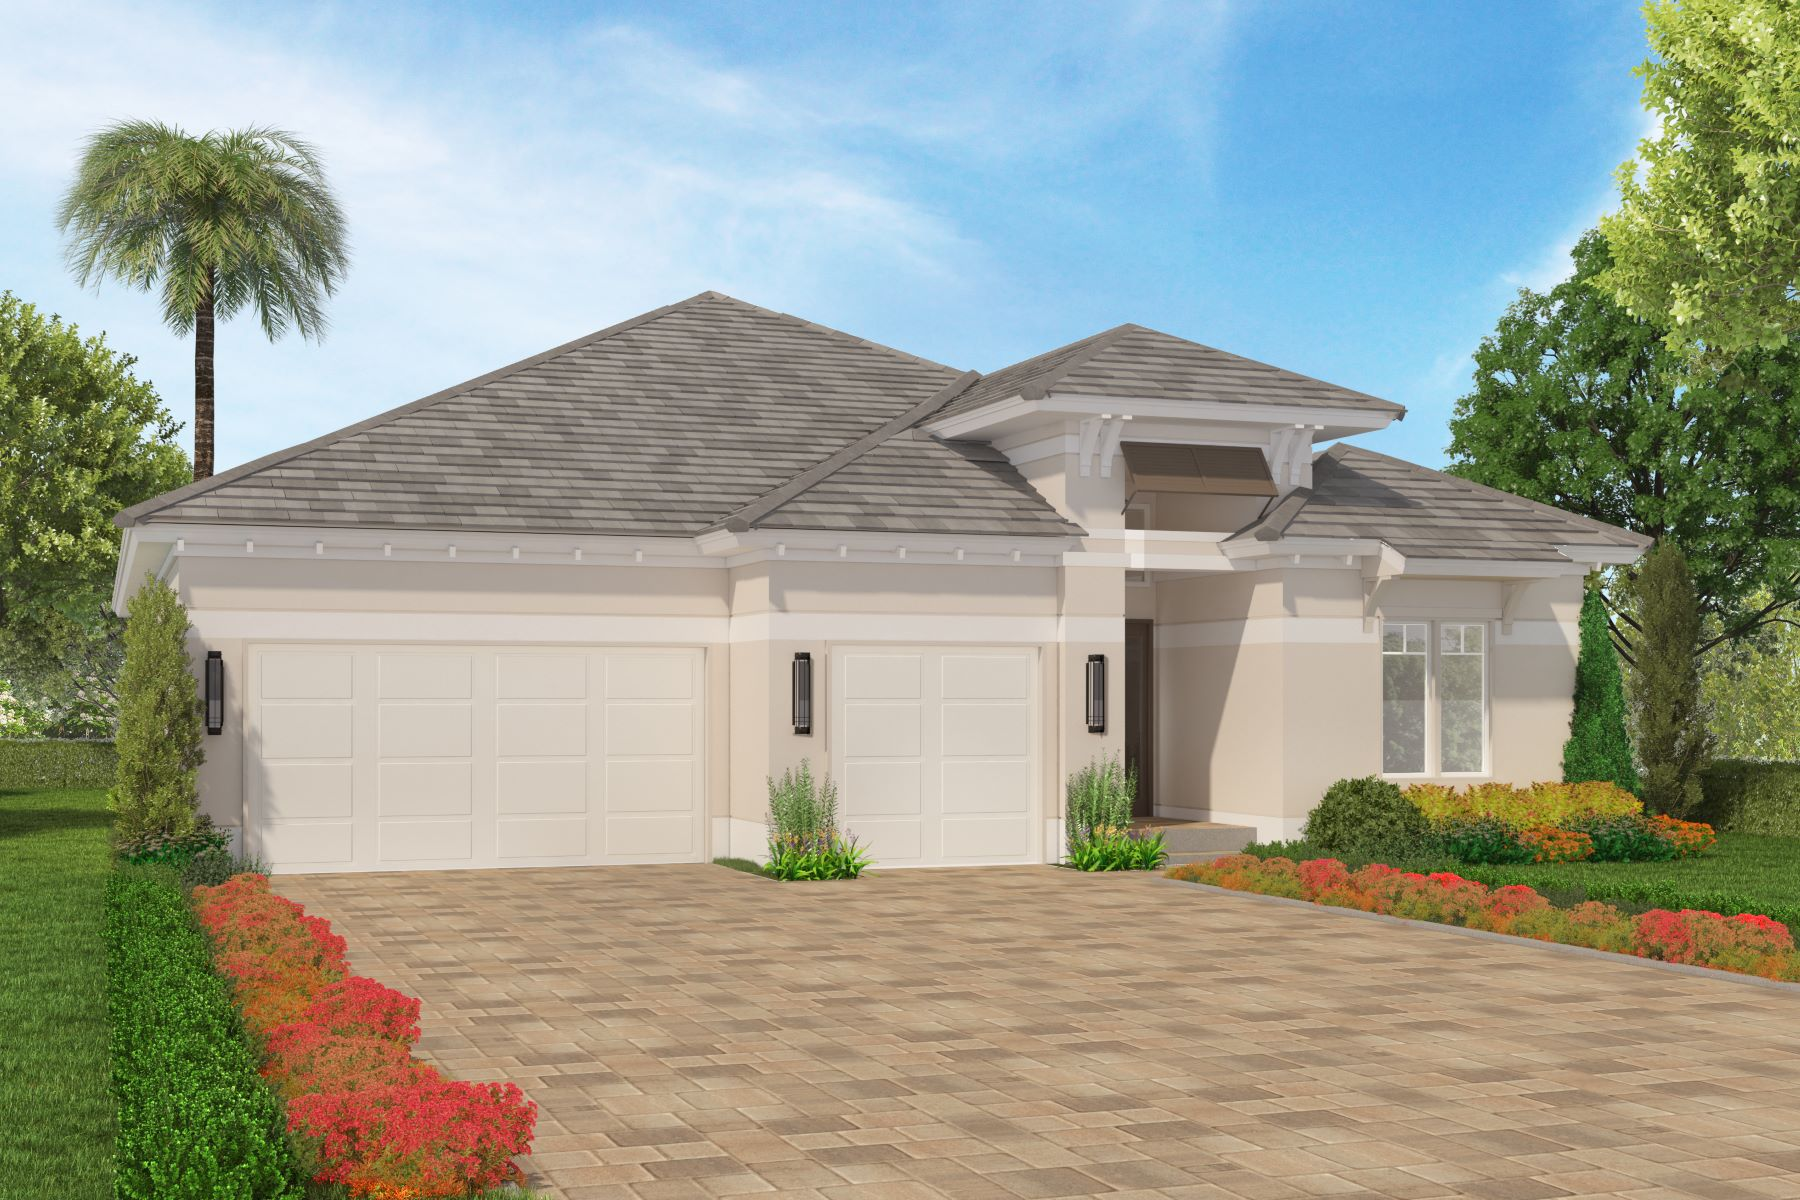 Single Family Homes for Sale at 9261 Orchid Cove Circle Vero Beach, Florida 32963 United States